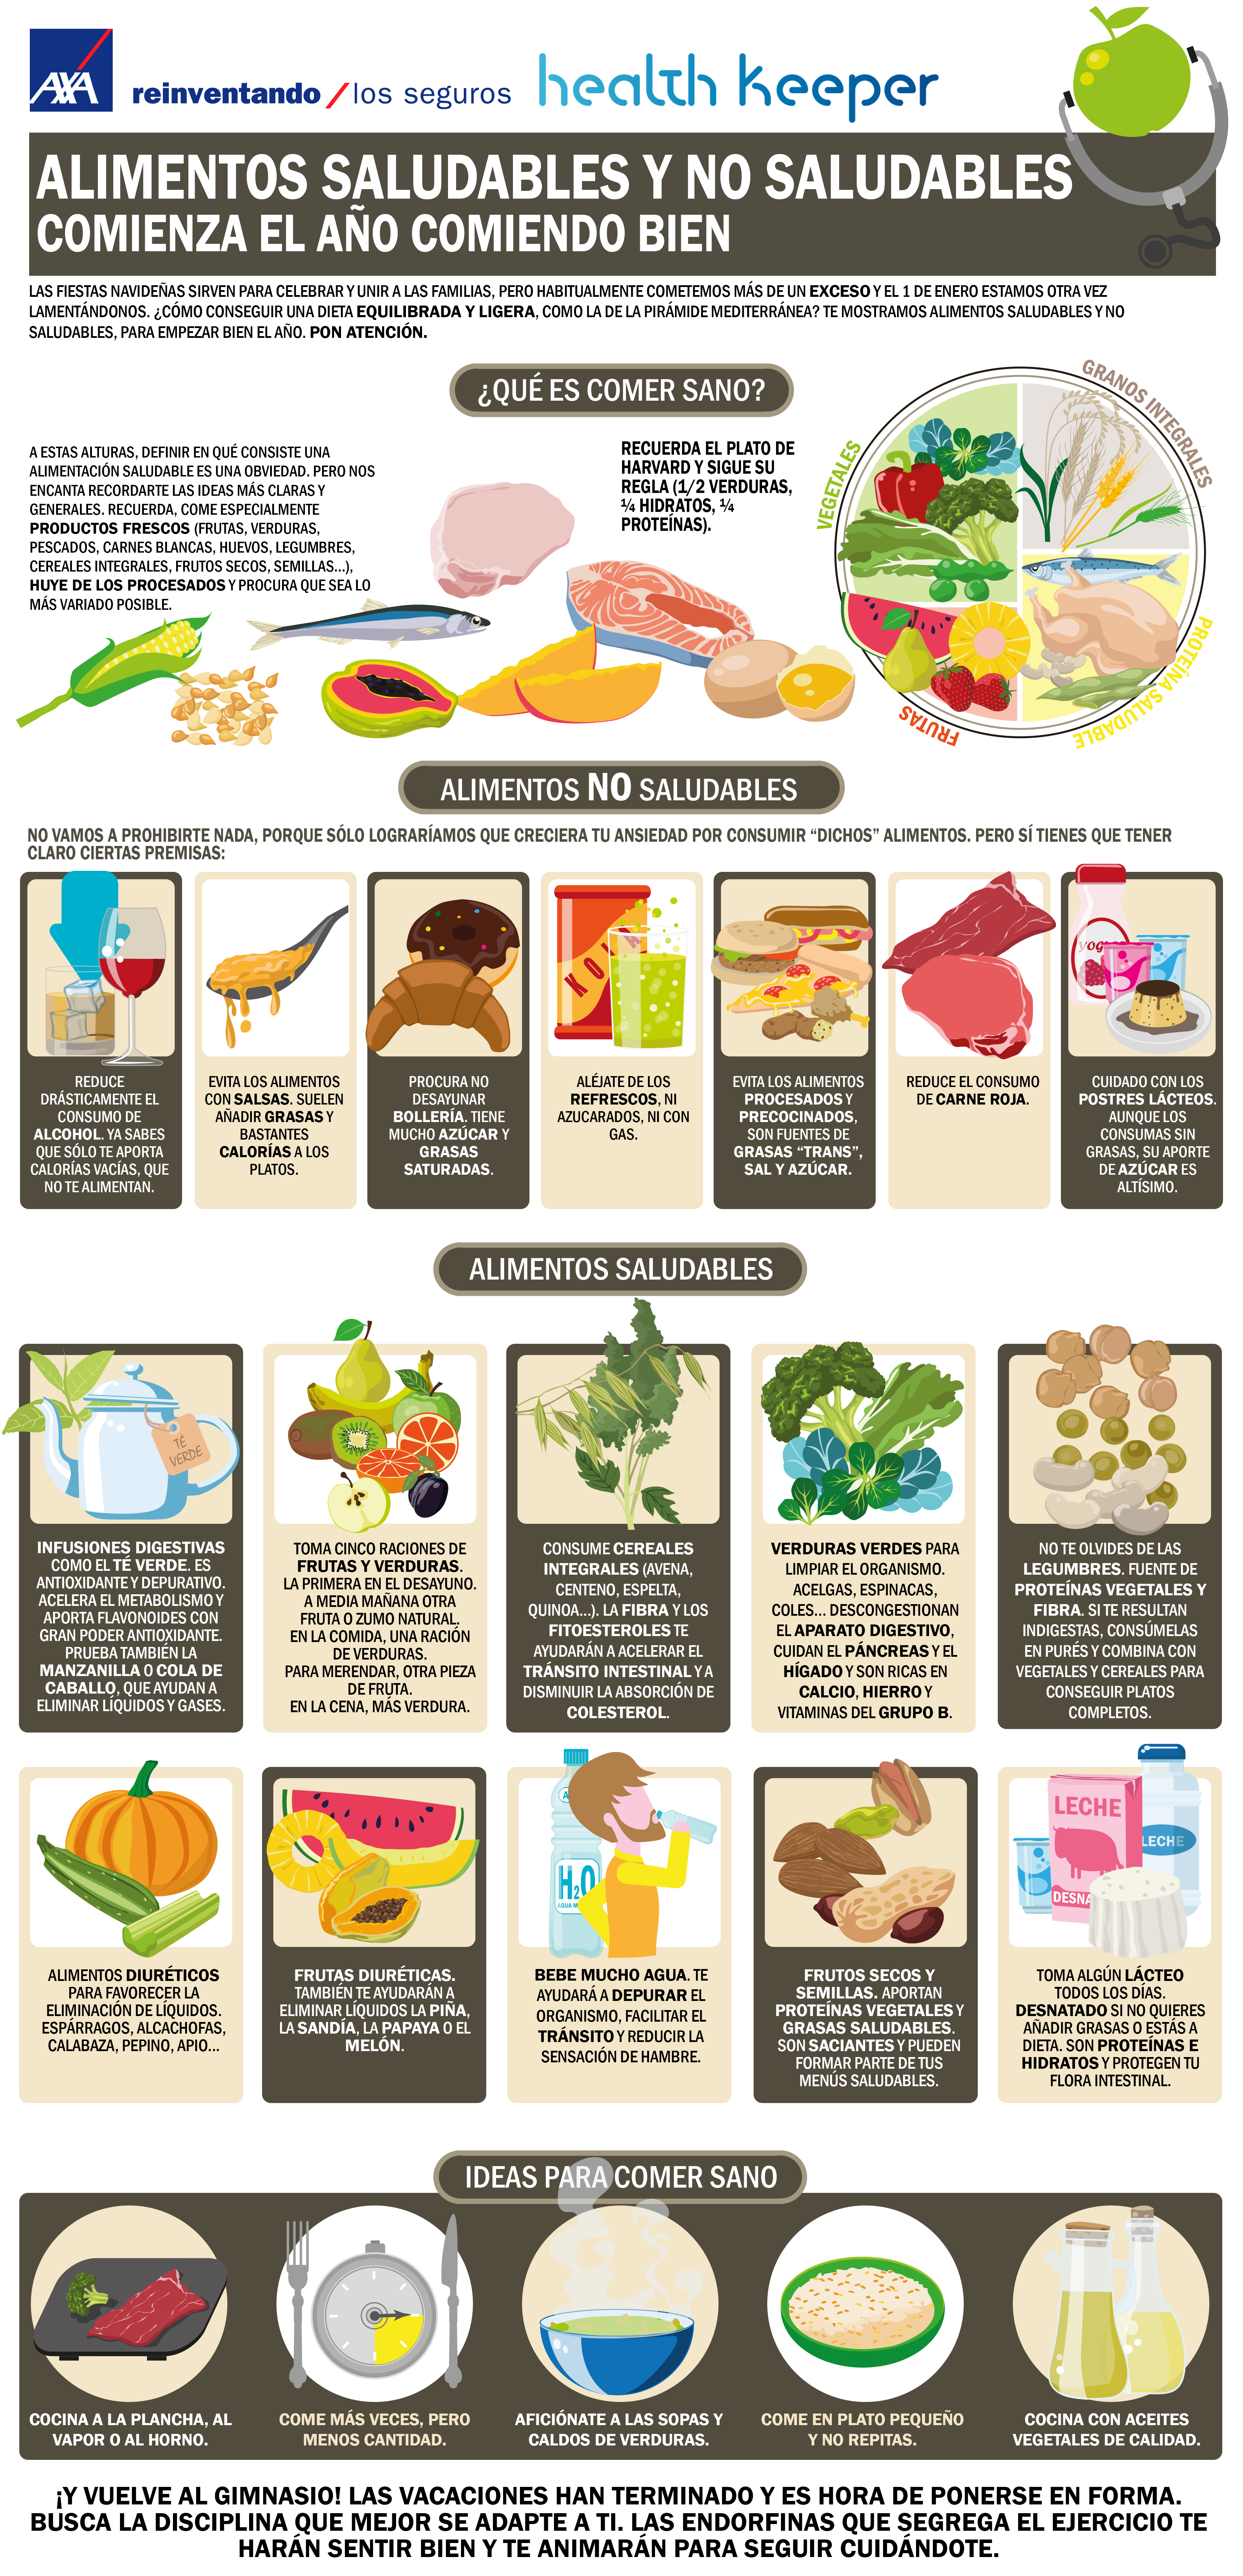 tabla comparativa de alimentos saludables y no saludables